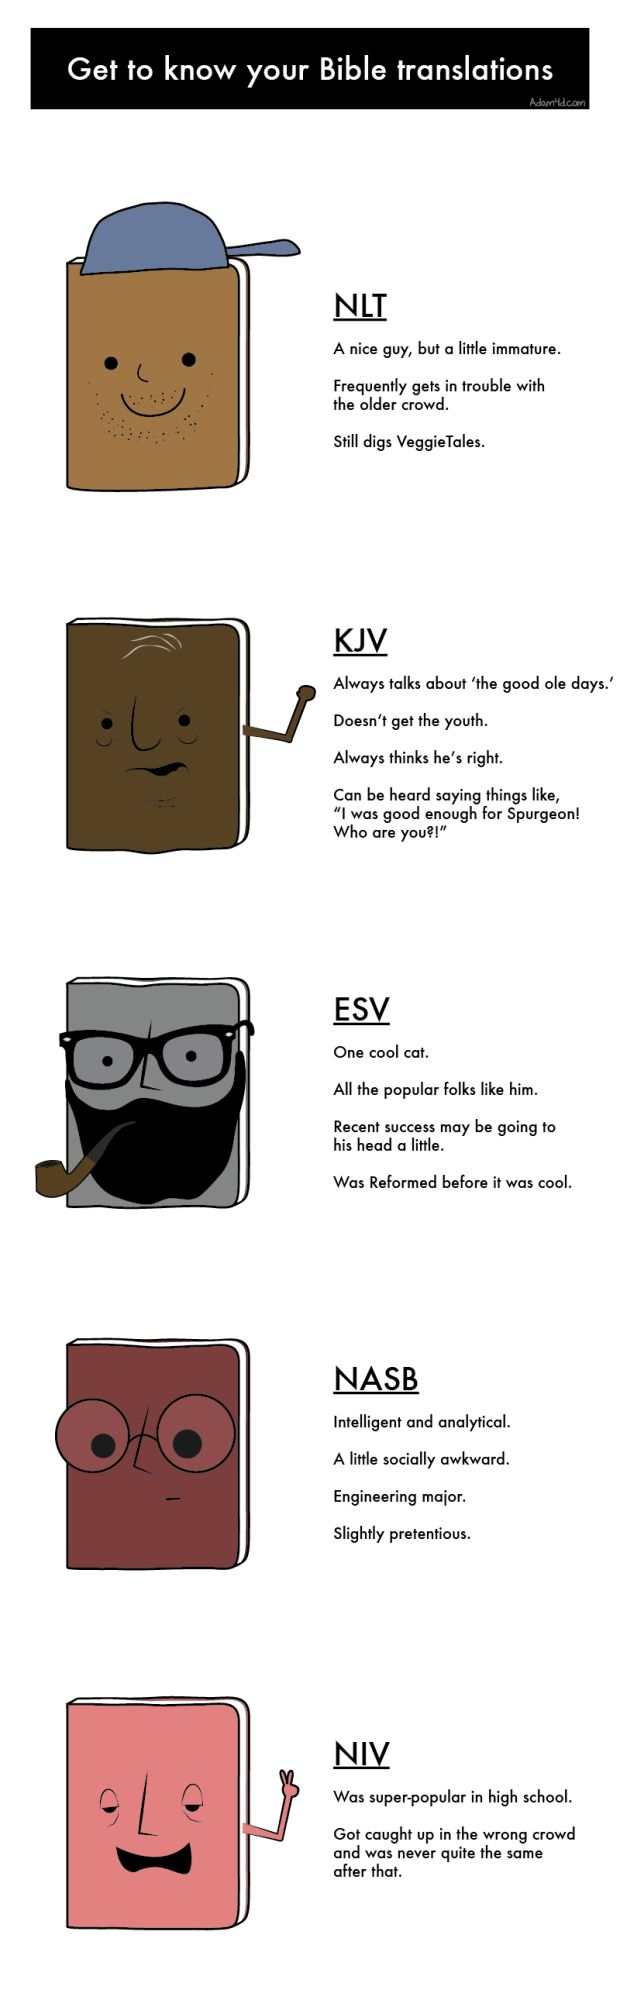 Get to Know Your Bible Translations [Comic] - ChurchMag